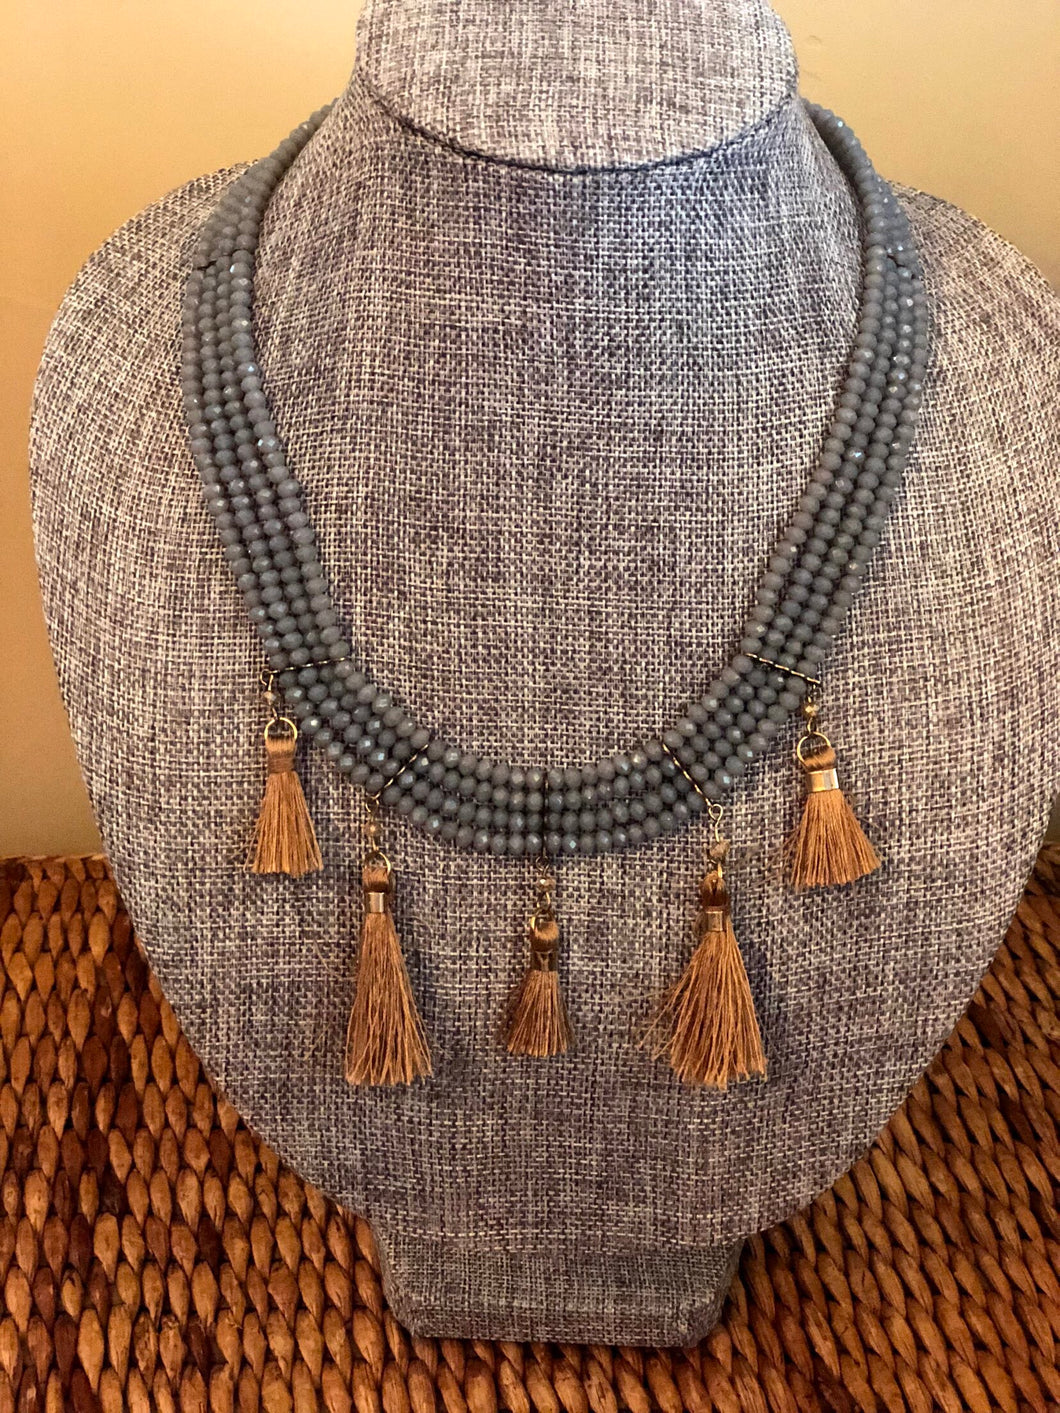 Grey and Tan Tassel Necklace